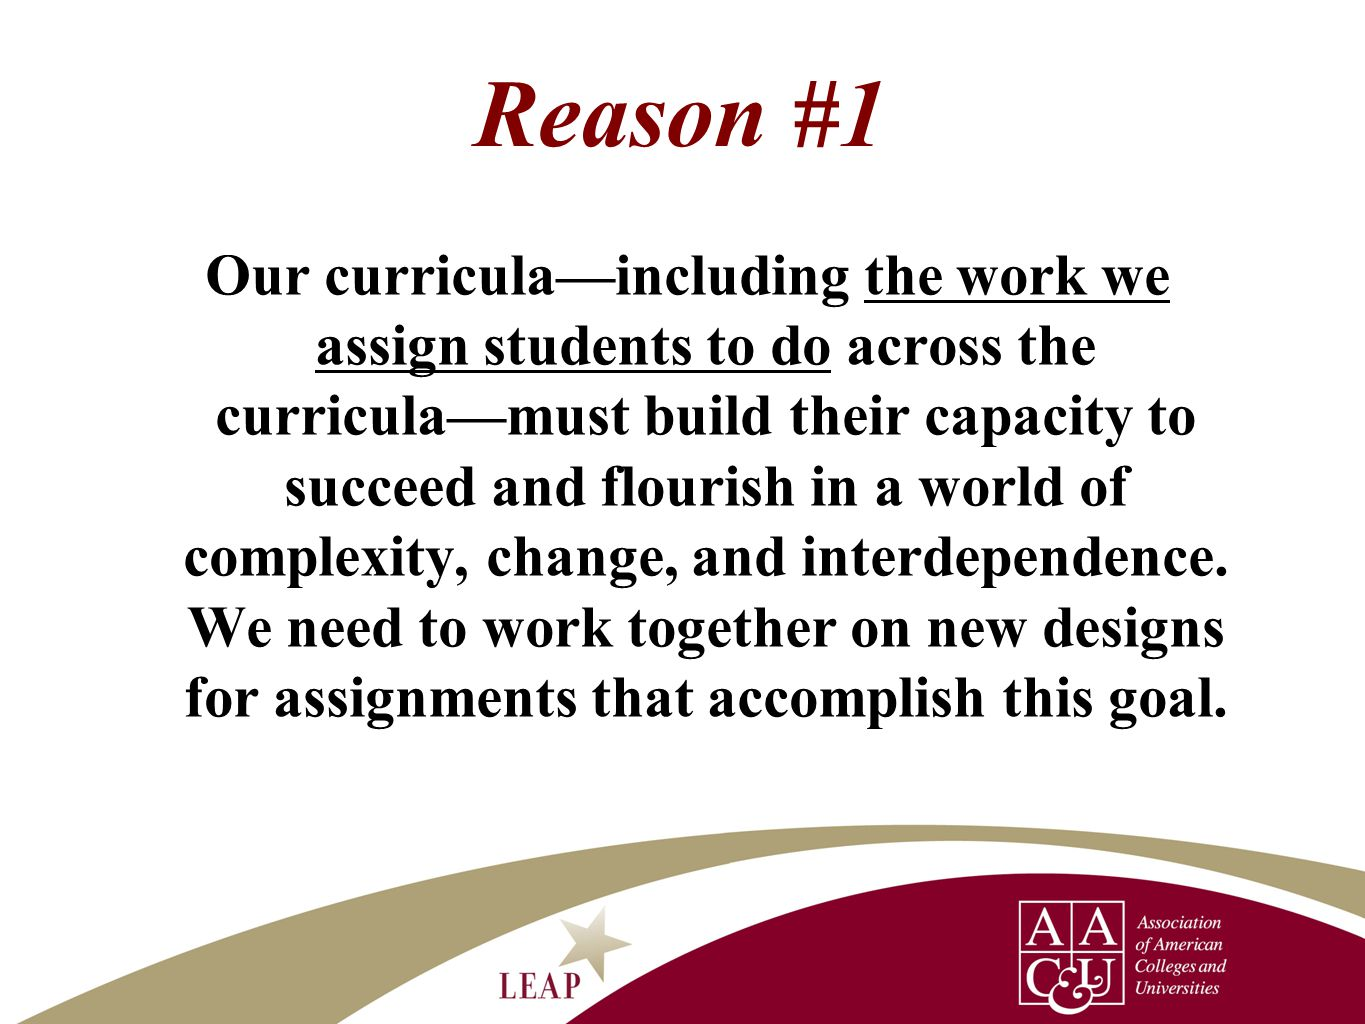 Reason #1 Our curricula—including the work we assign students to do across the curricula—must build their capacity to succeed and flourish in a world